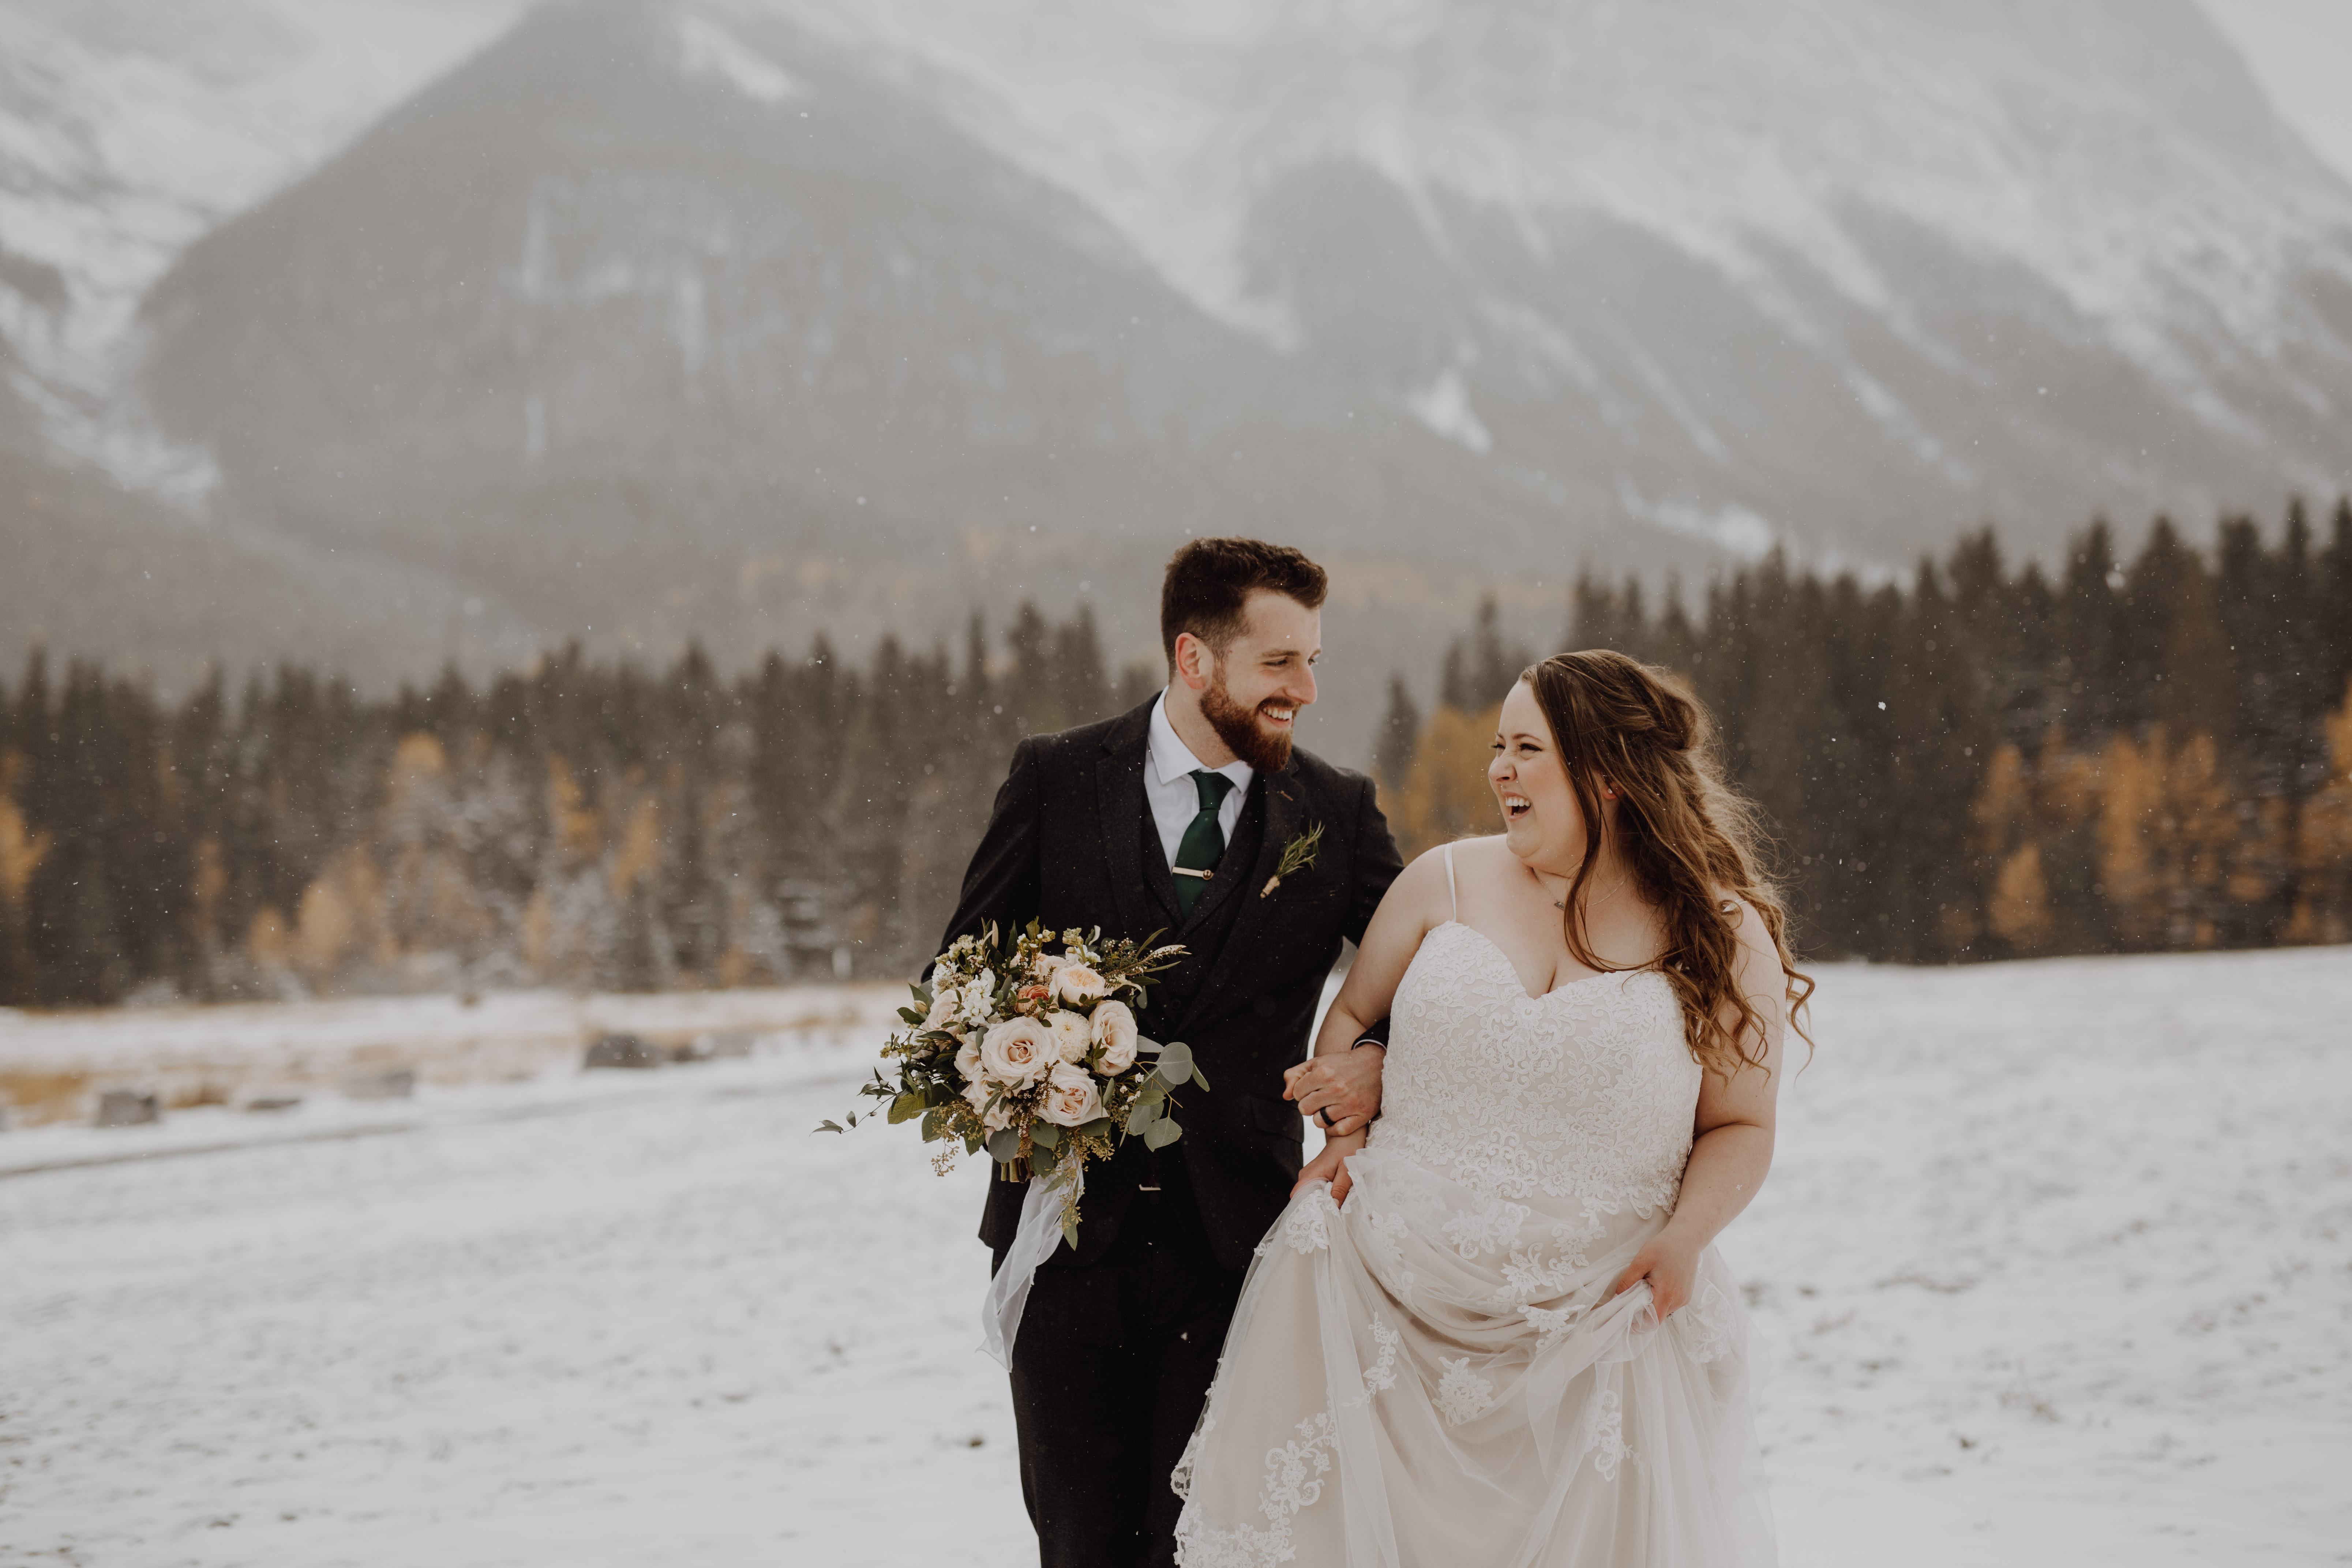 Banff Wedding - bride and groom in the snow